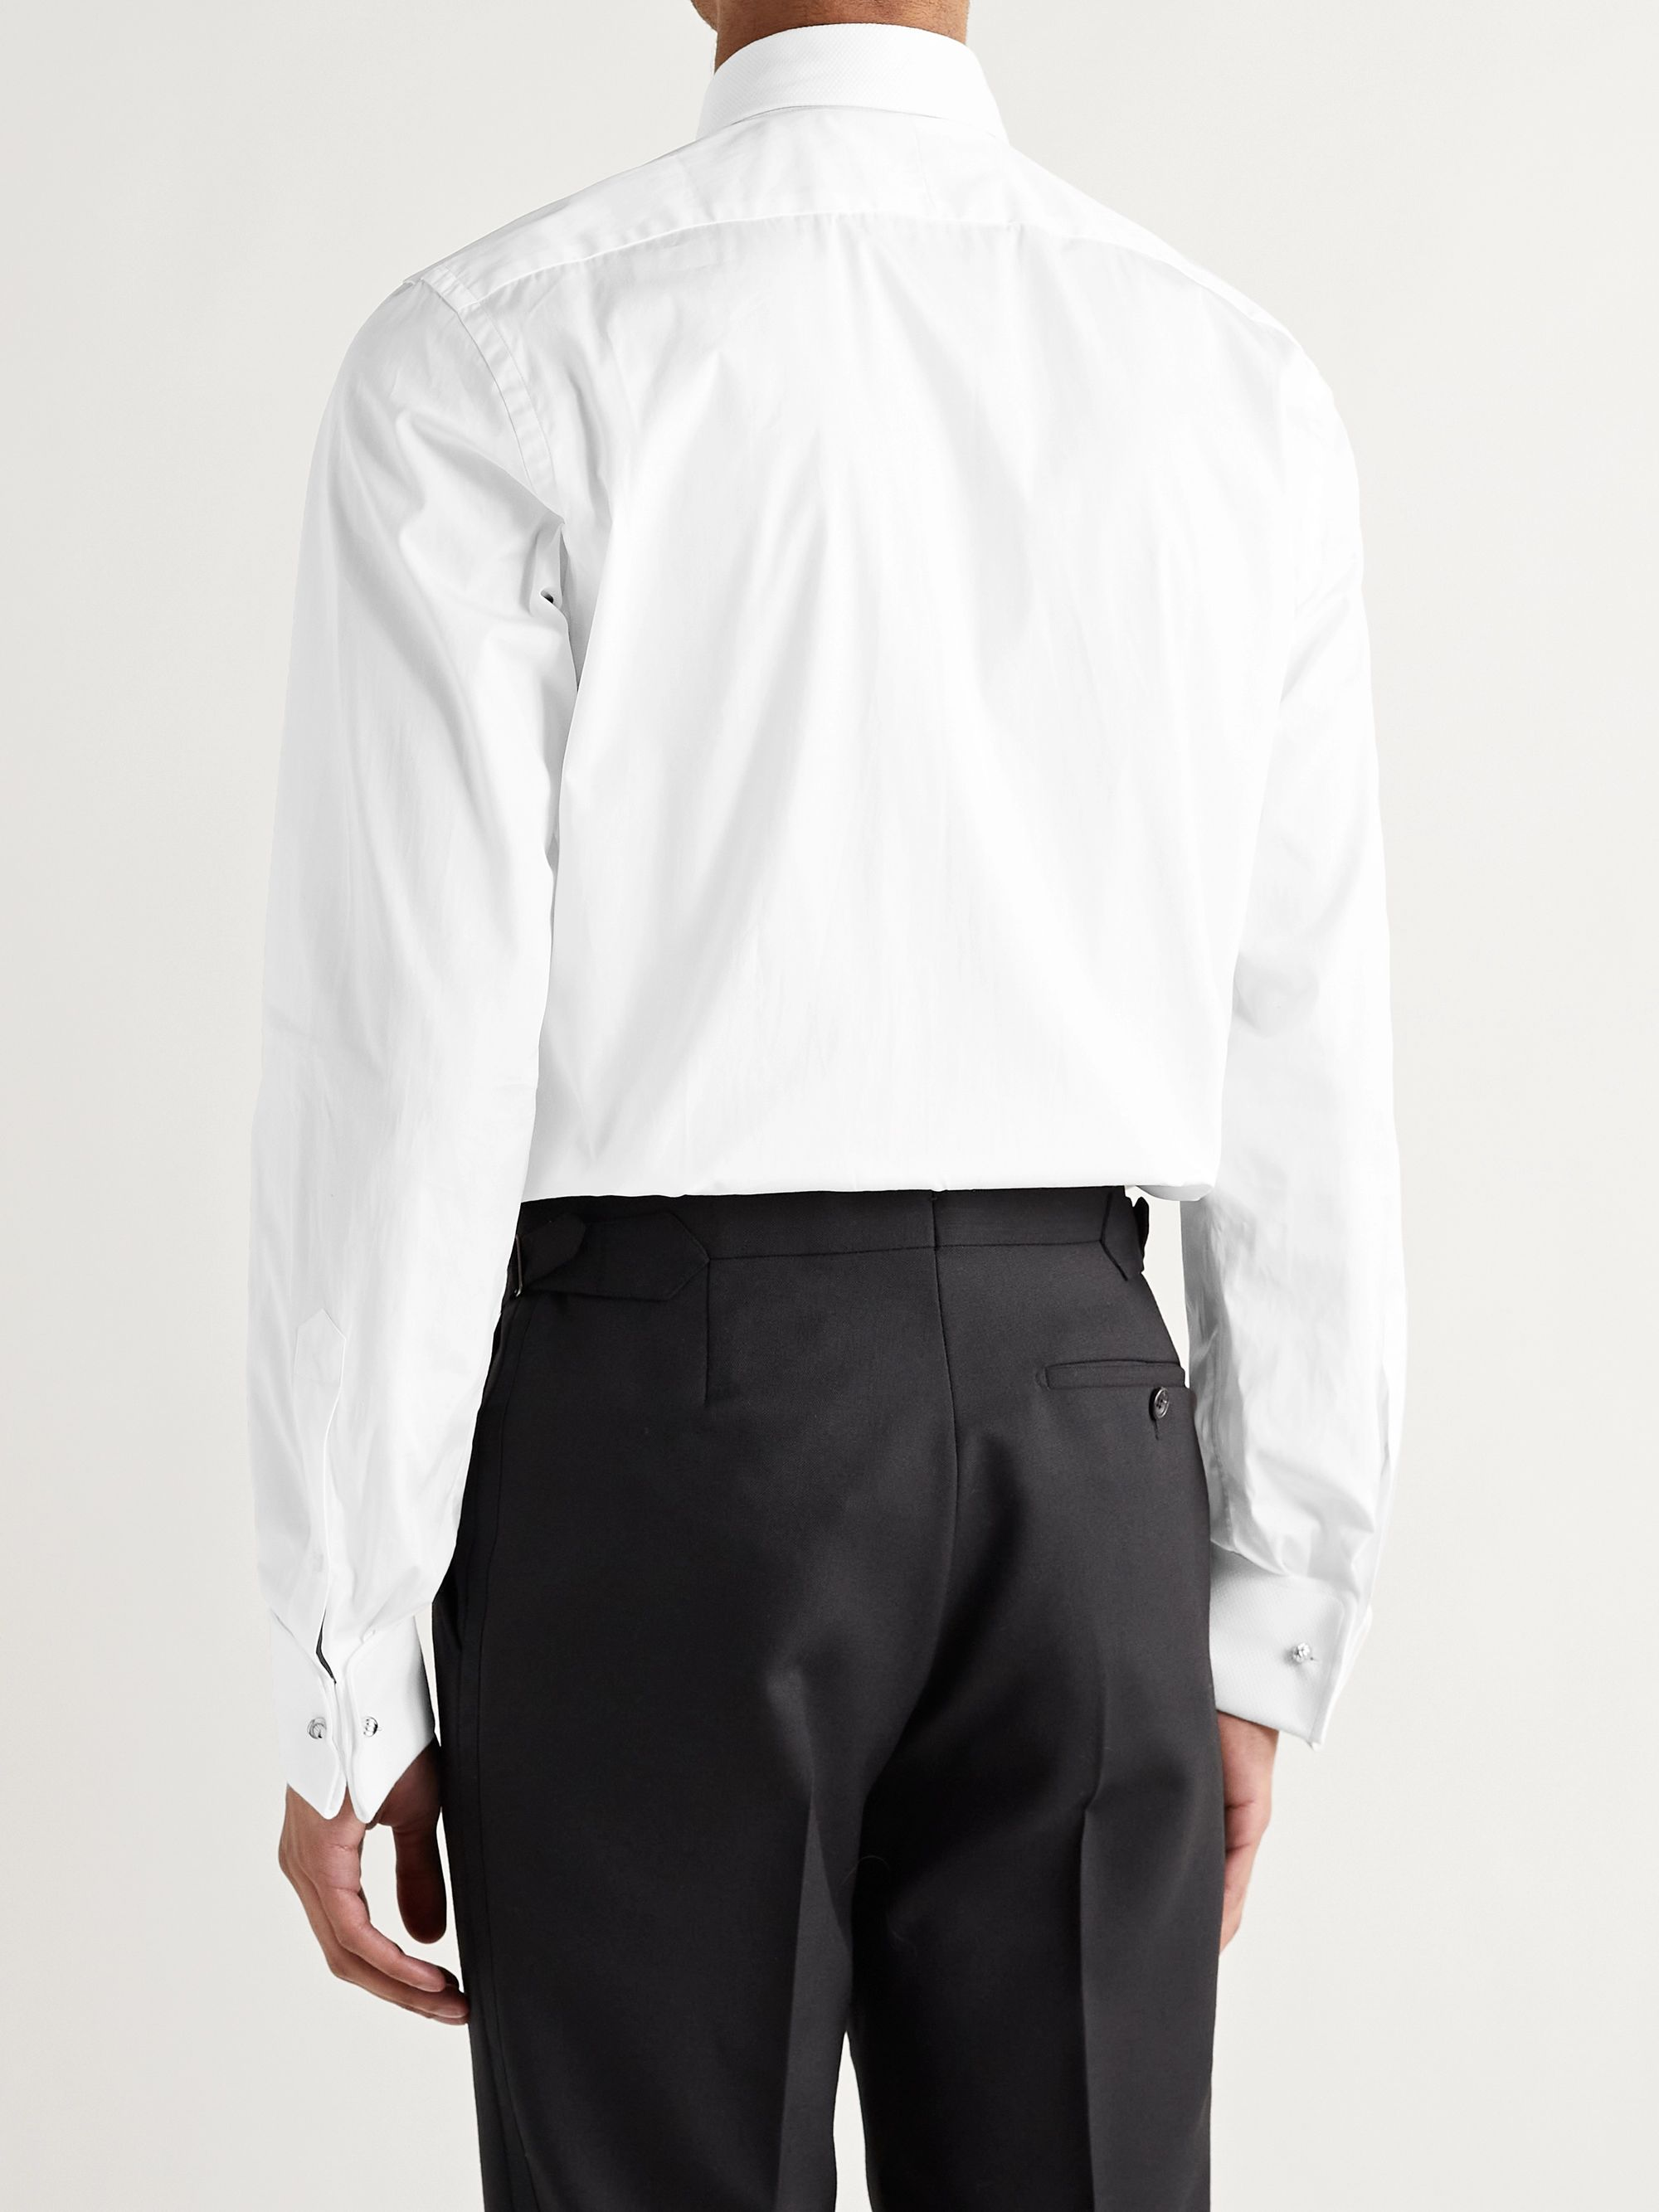 TOM FORD White Slim-Fit Bib-Front Double-Cuff Cotton Tuxedo Shirt